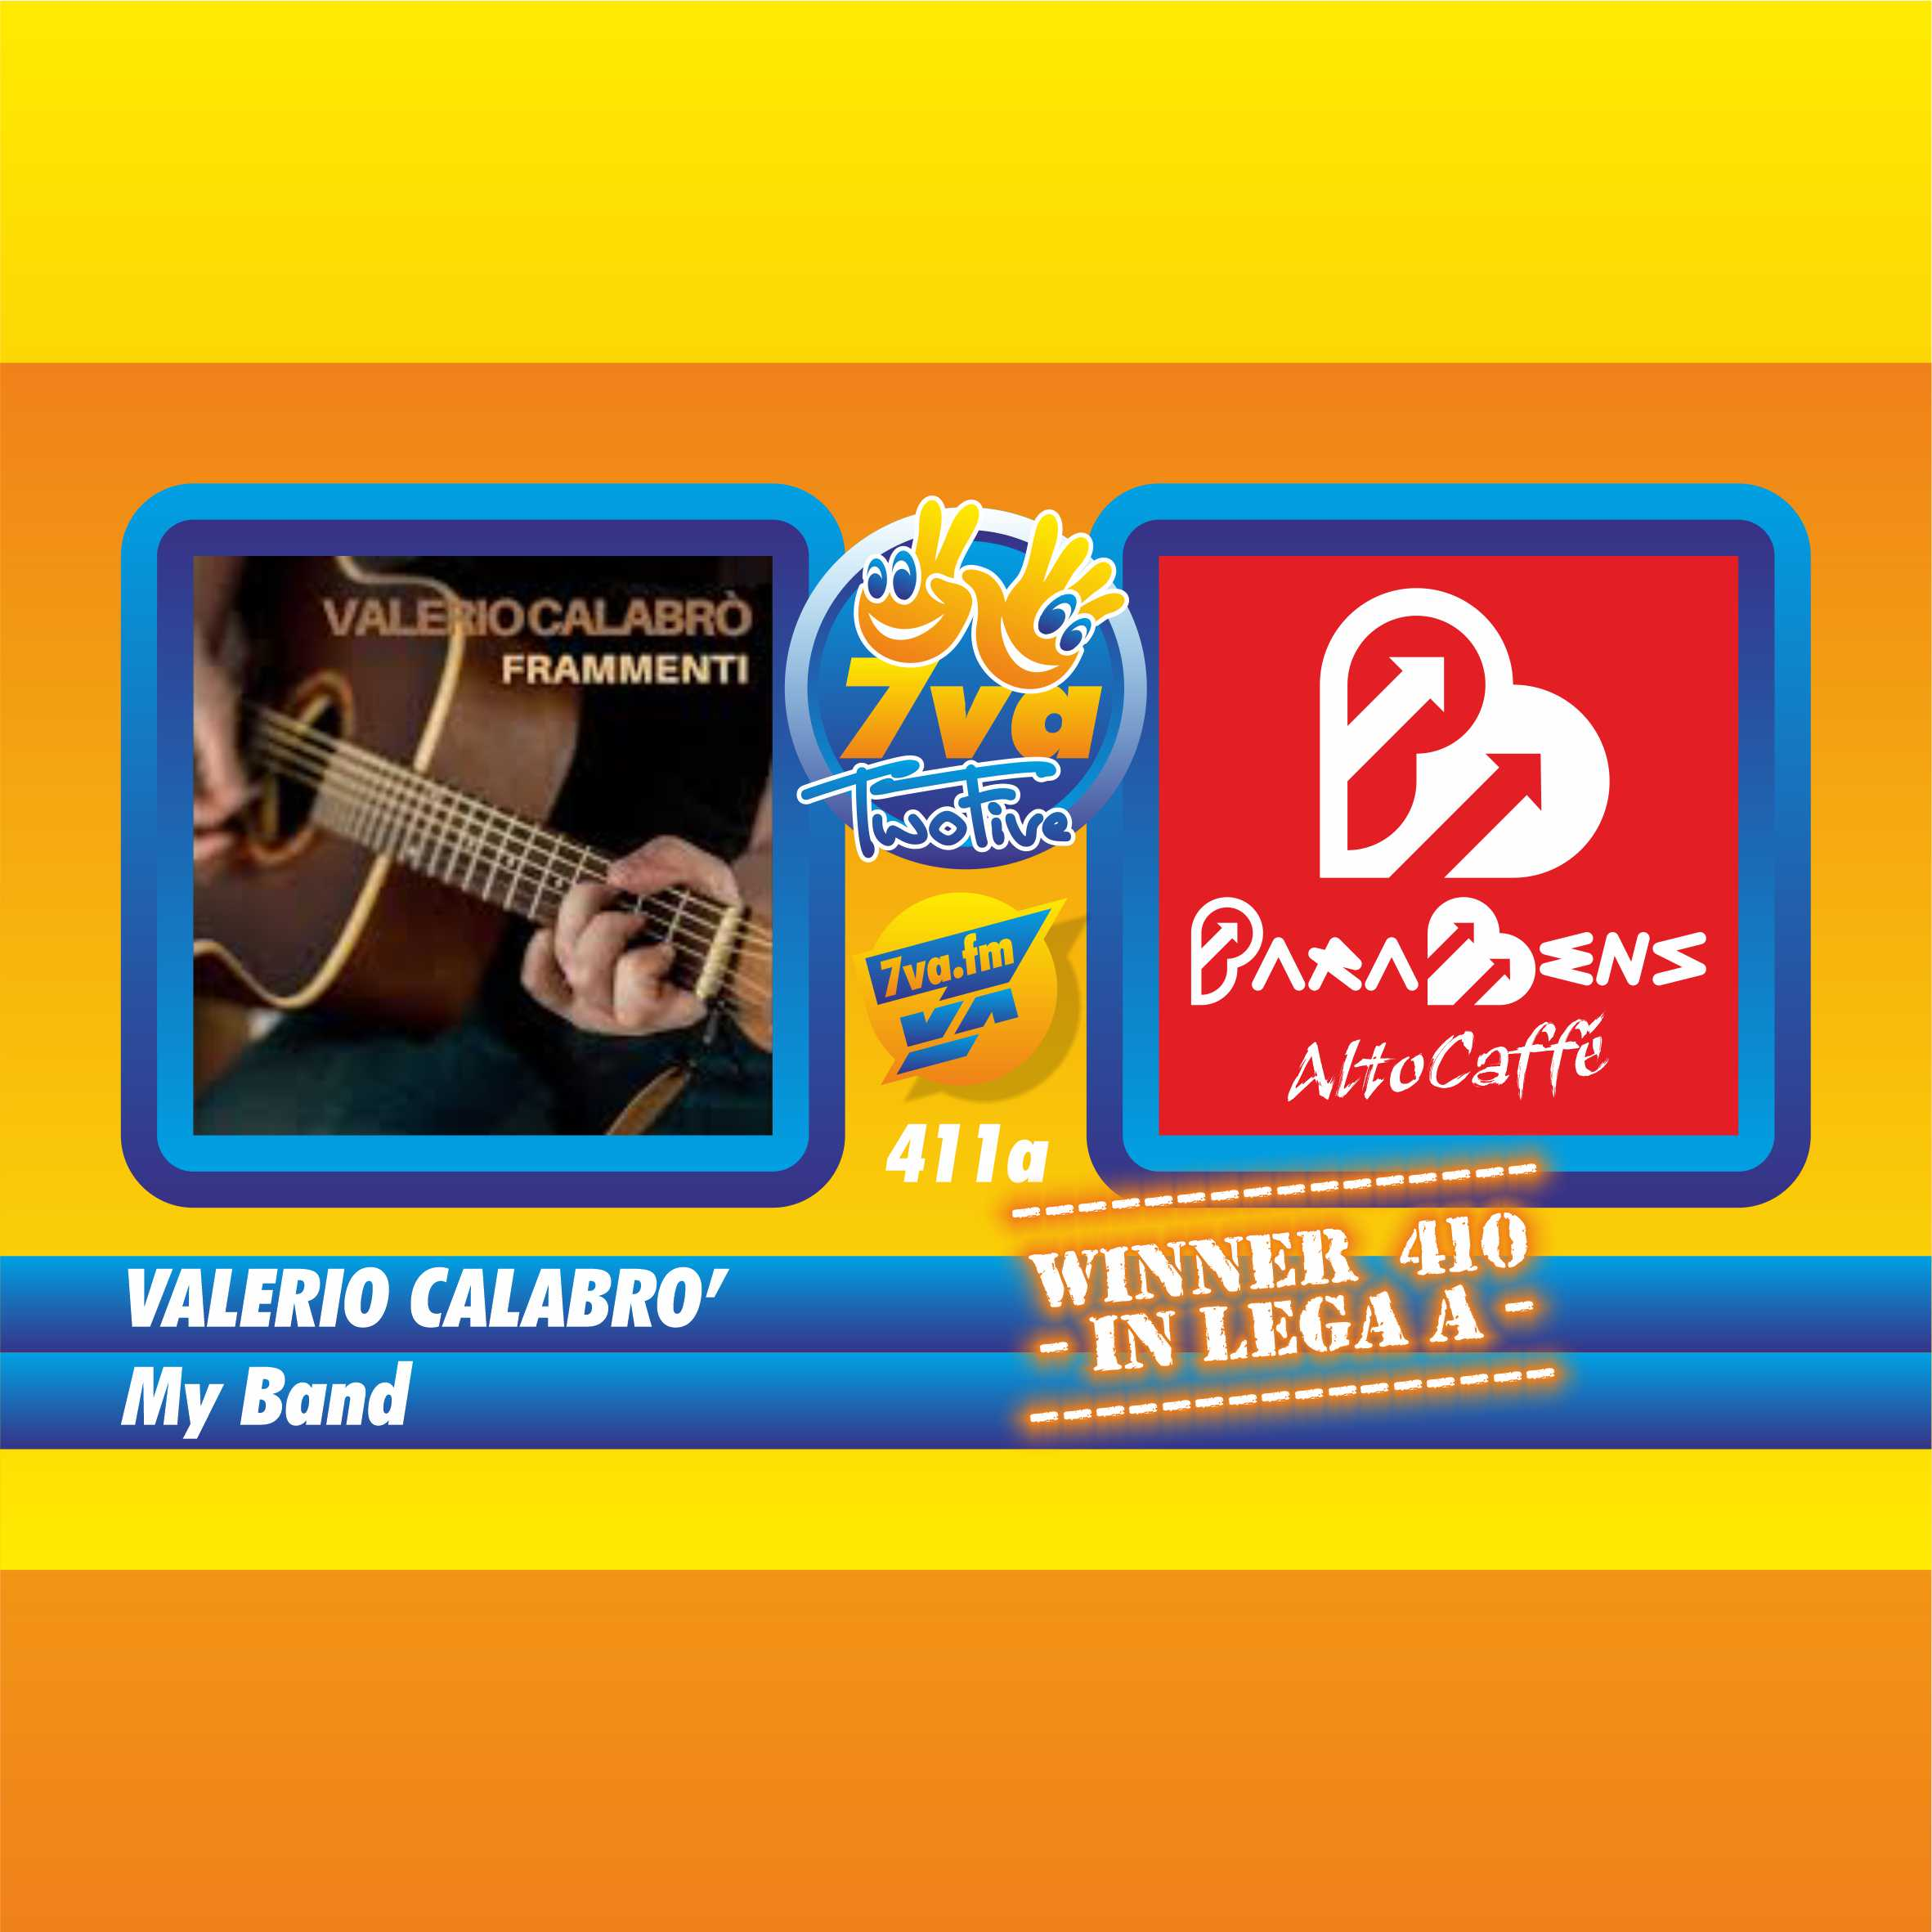 VALERIO CALABRO' - My Band - in TwoFive